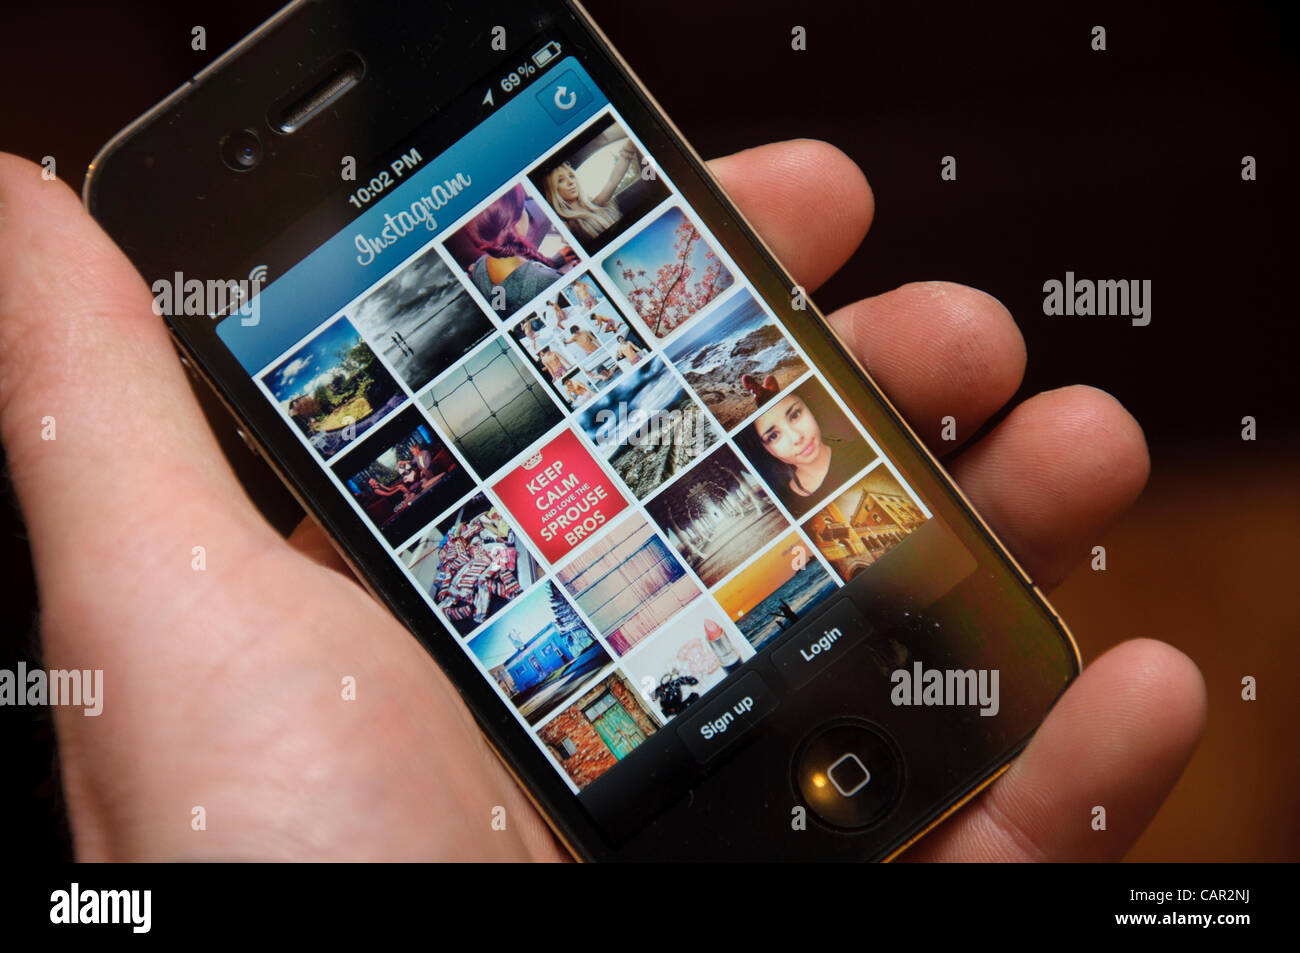 Instagram app for iphone and facebook being shown on the start up screen of an iphone 4 - Stock Image